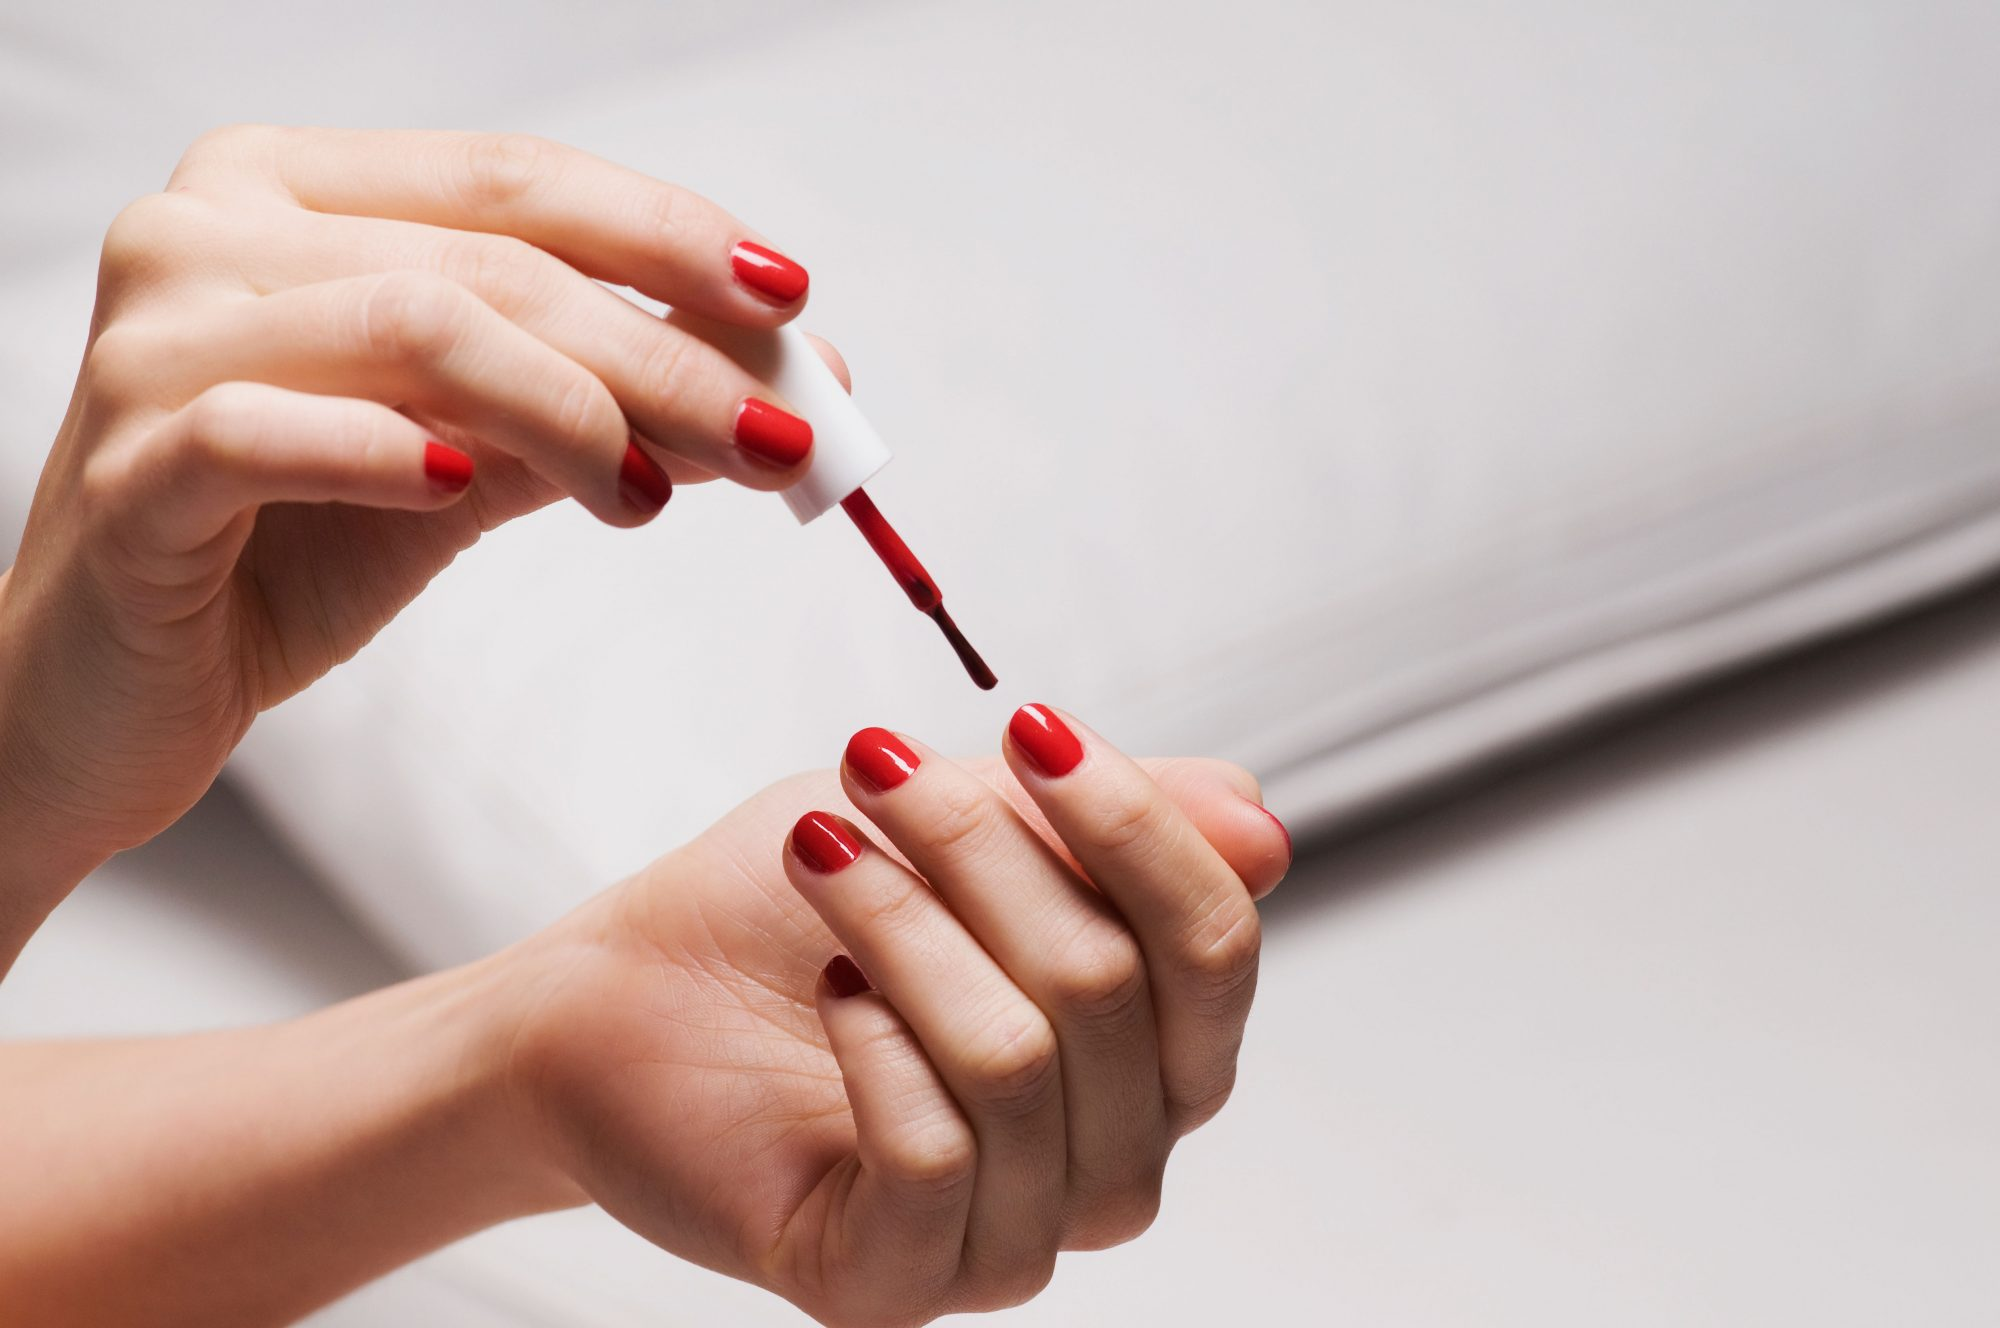 Woman's Hands with Red Manicure